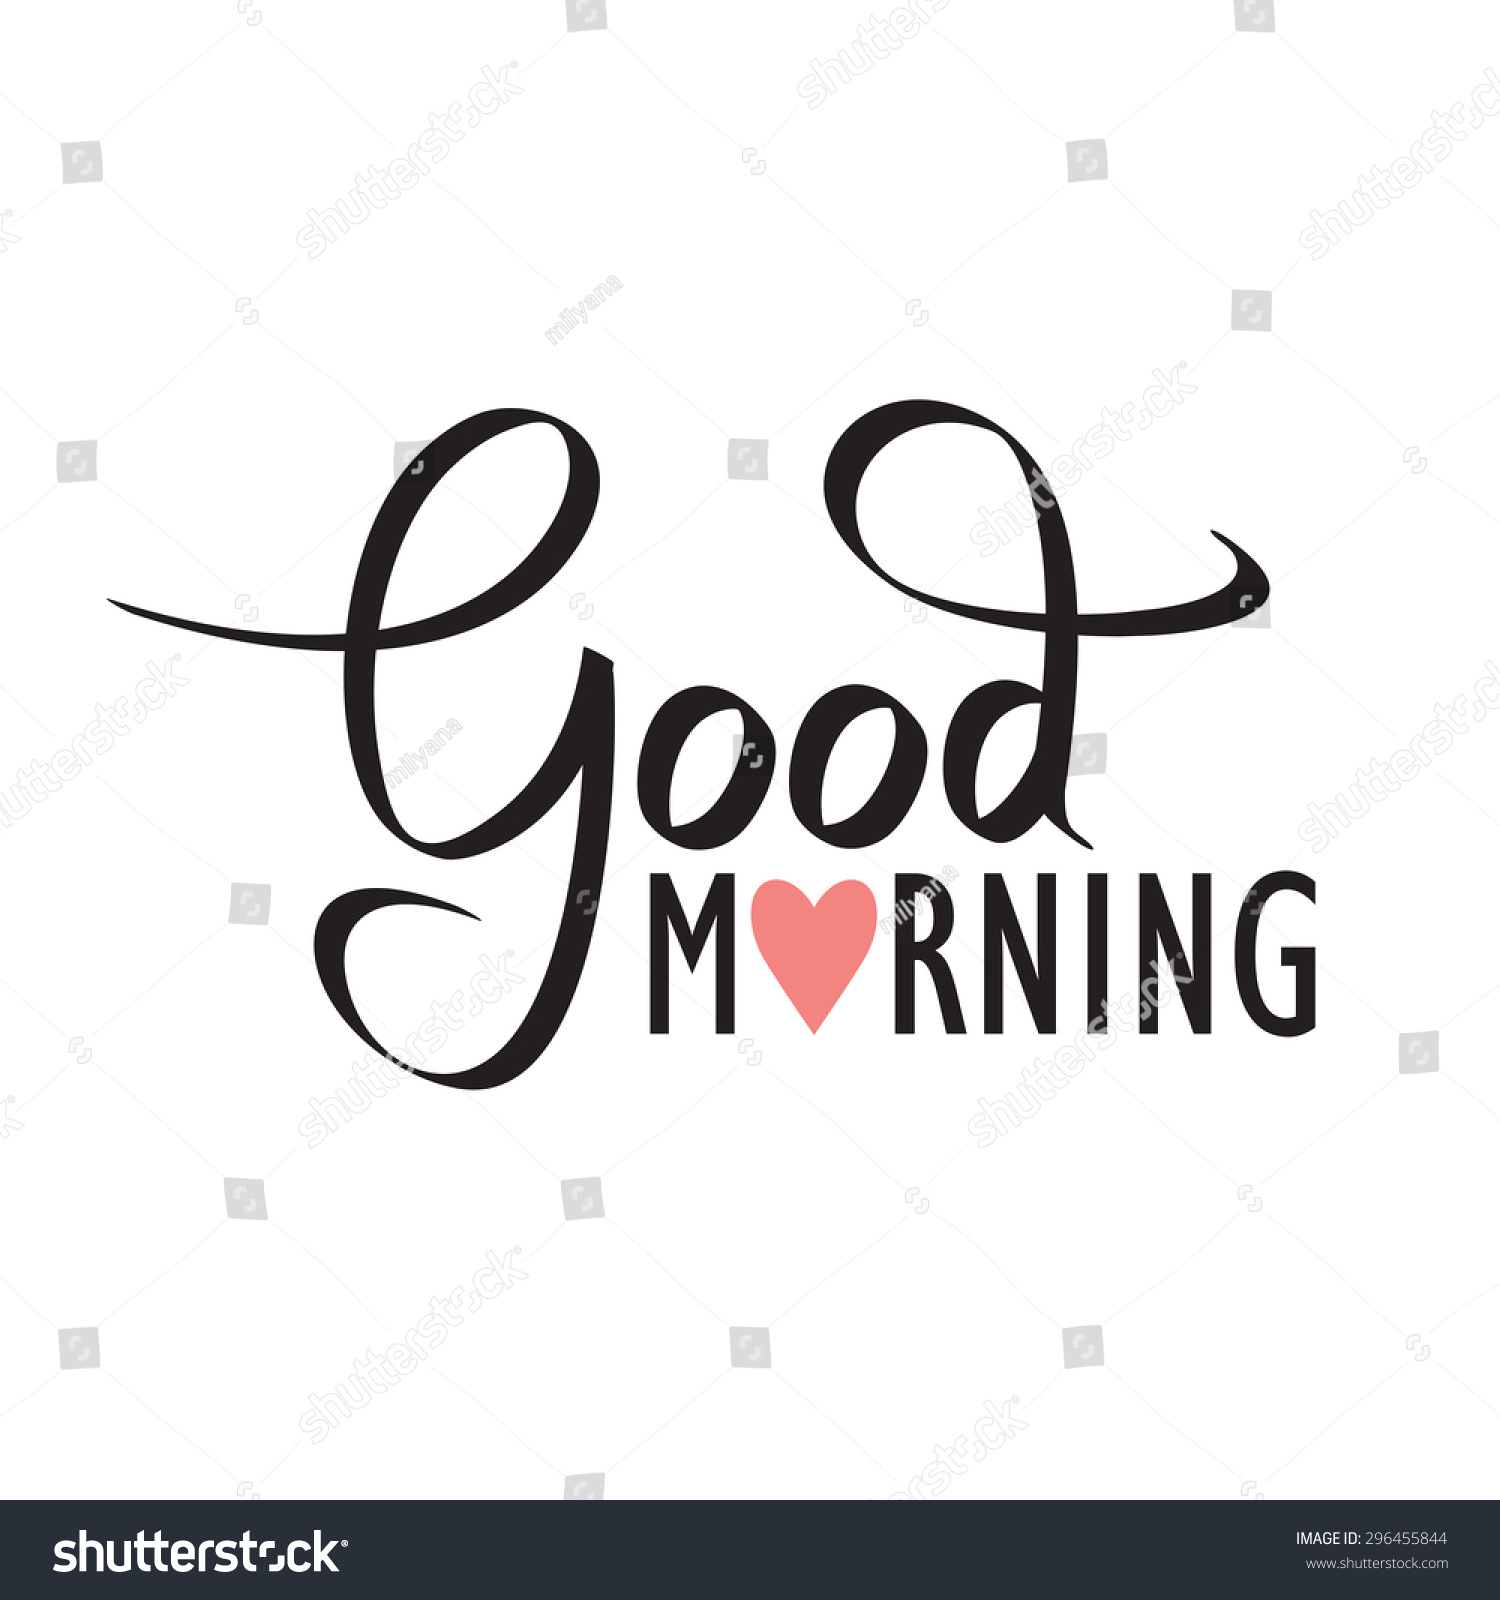 Good morning hand lettering text handmade calligraphy